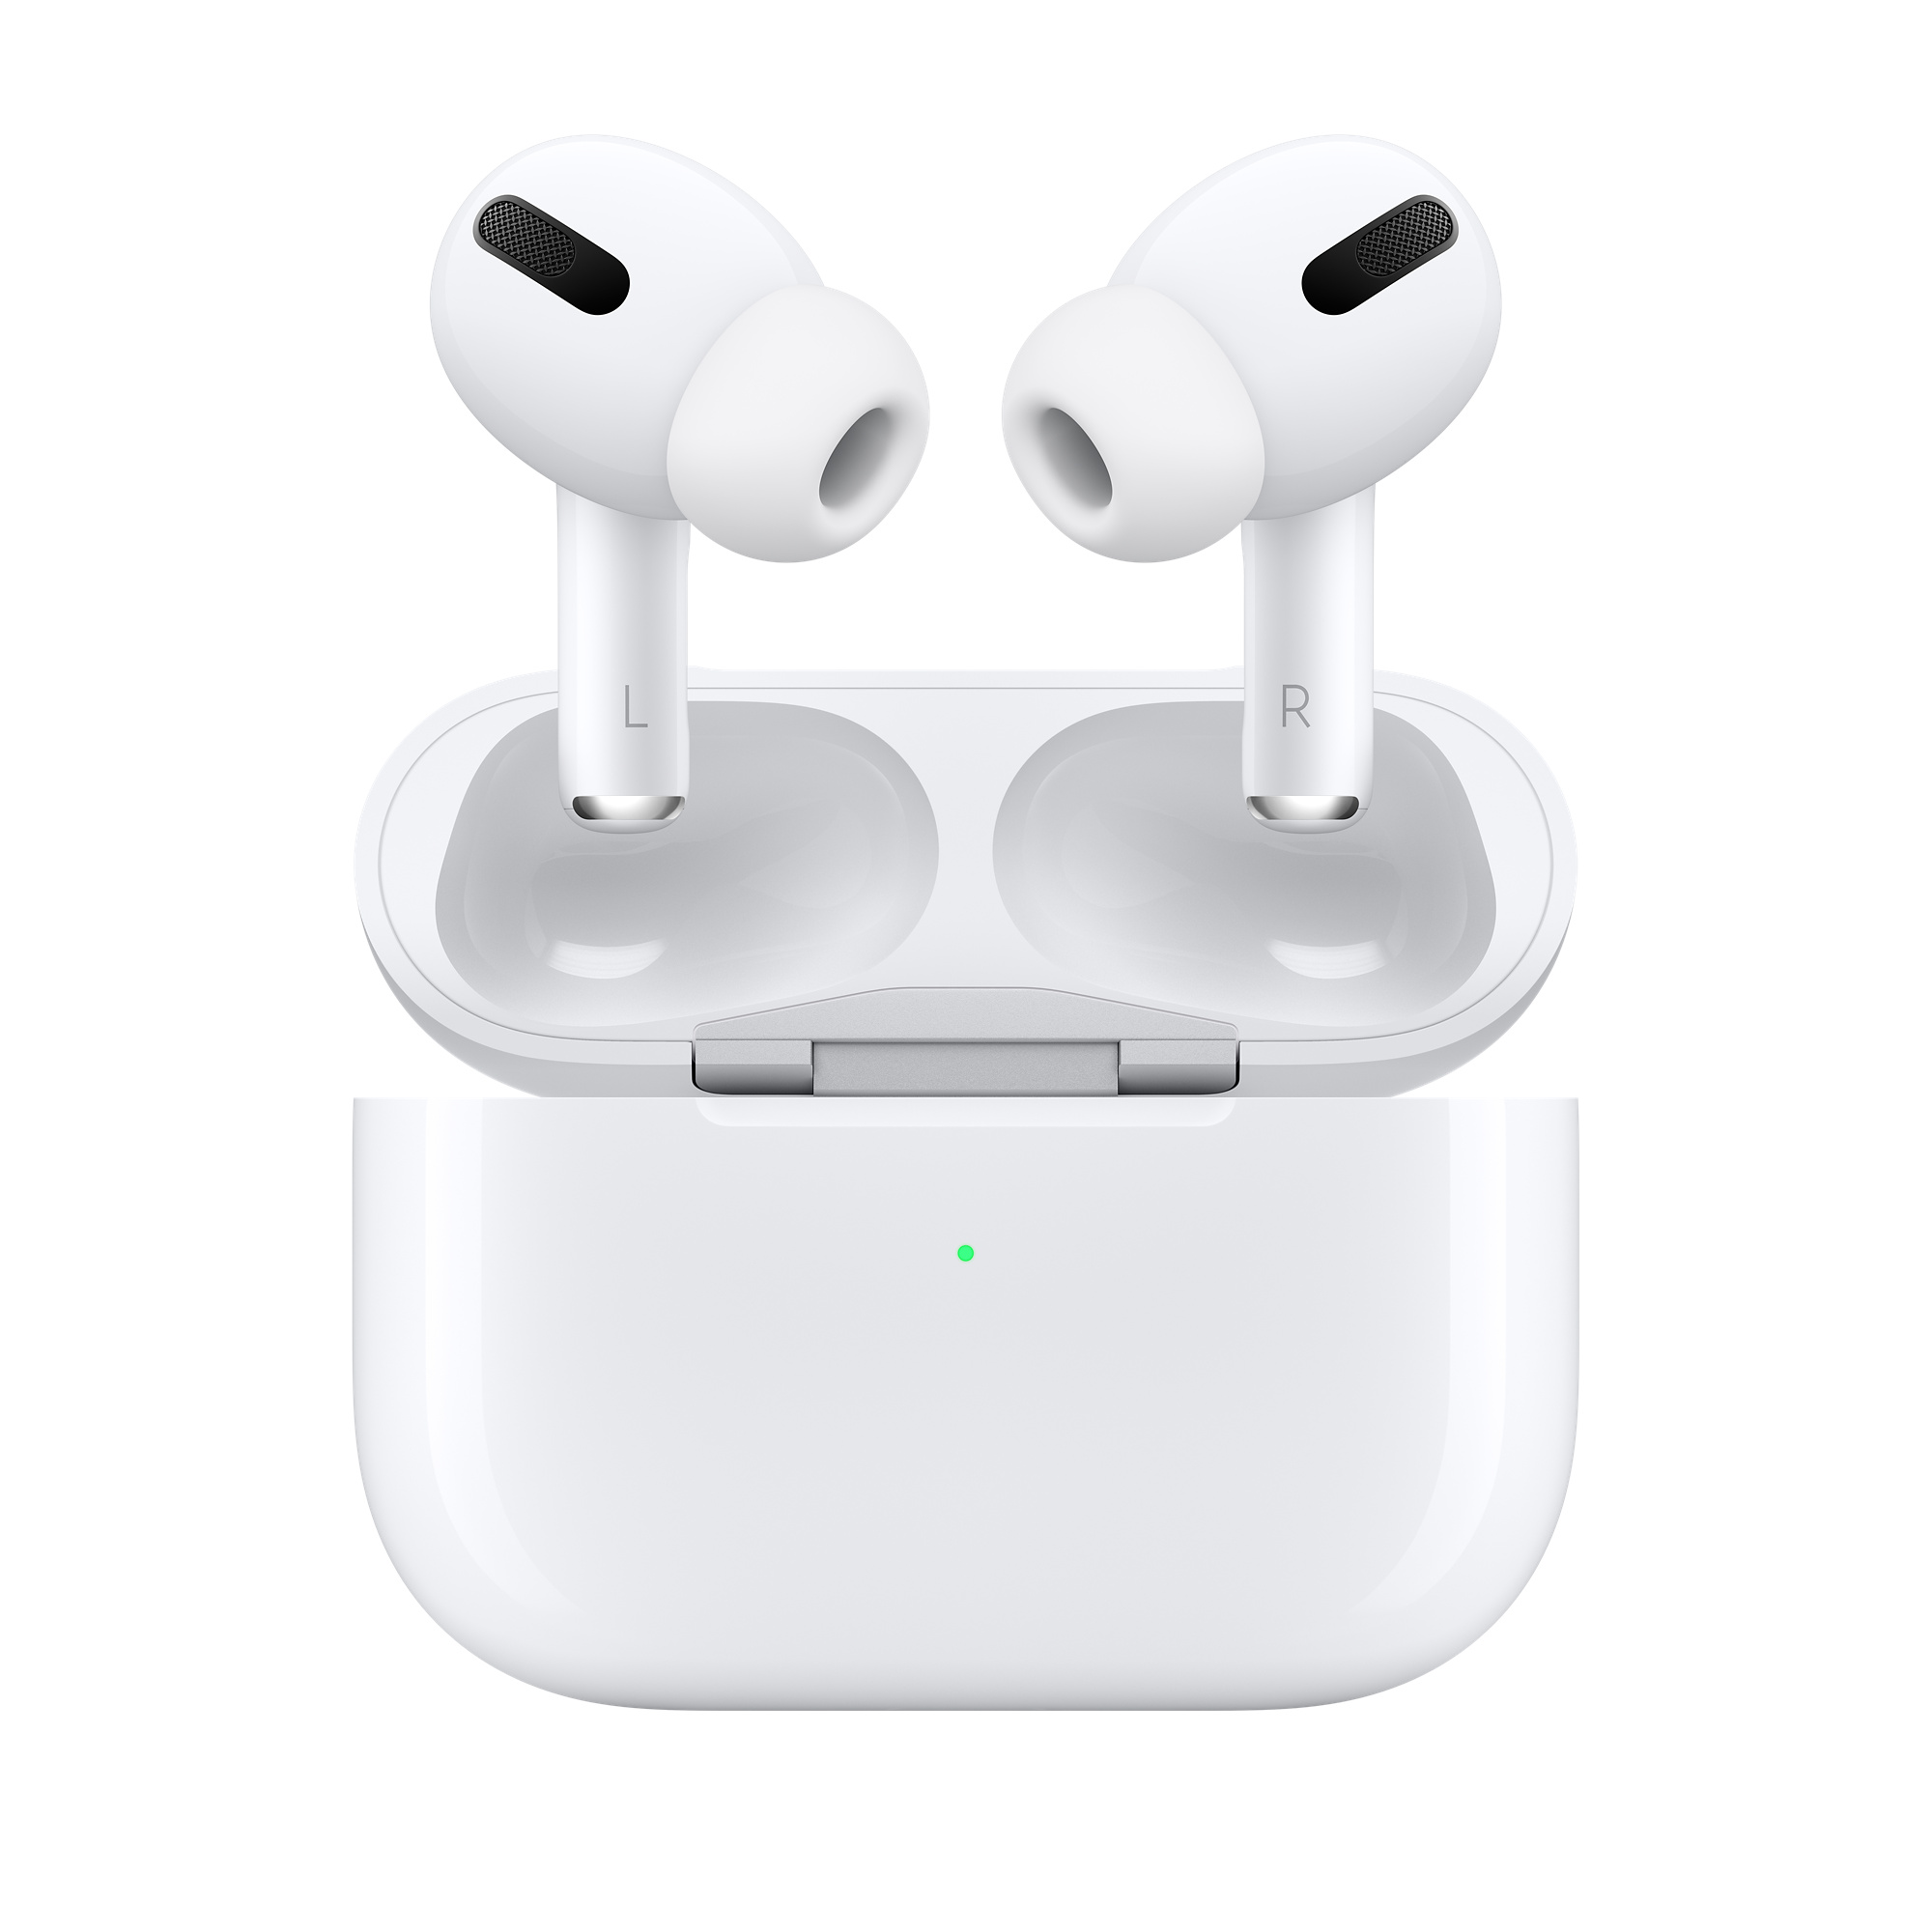 Buy Airpods Pro Apple